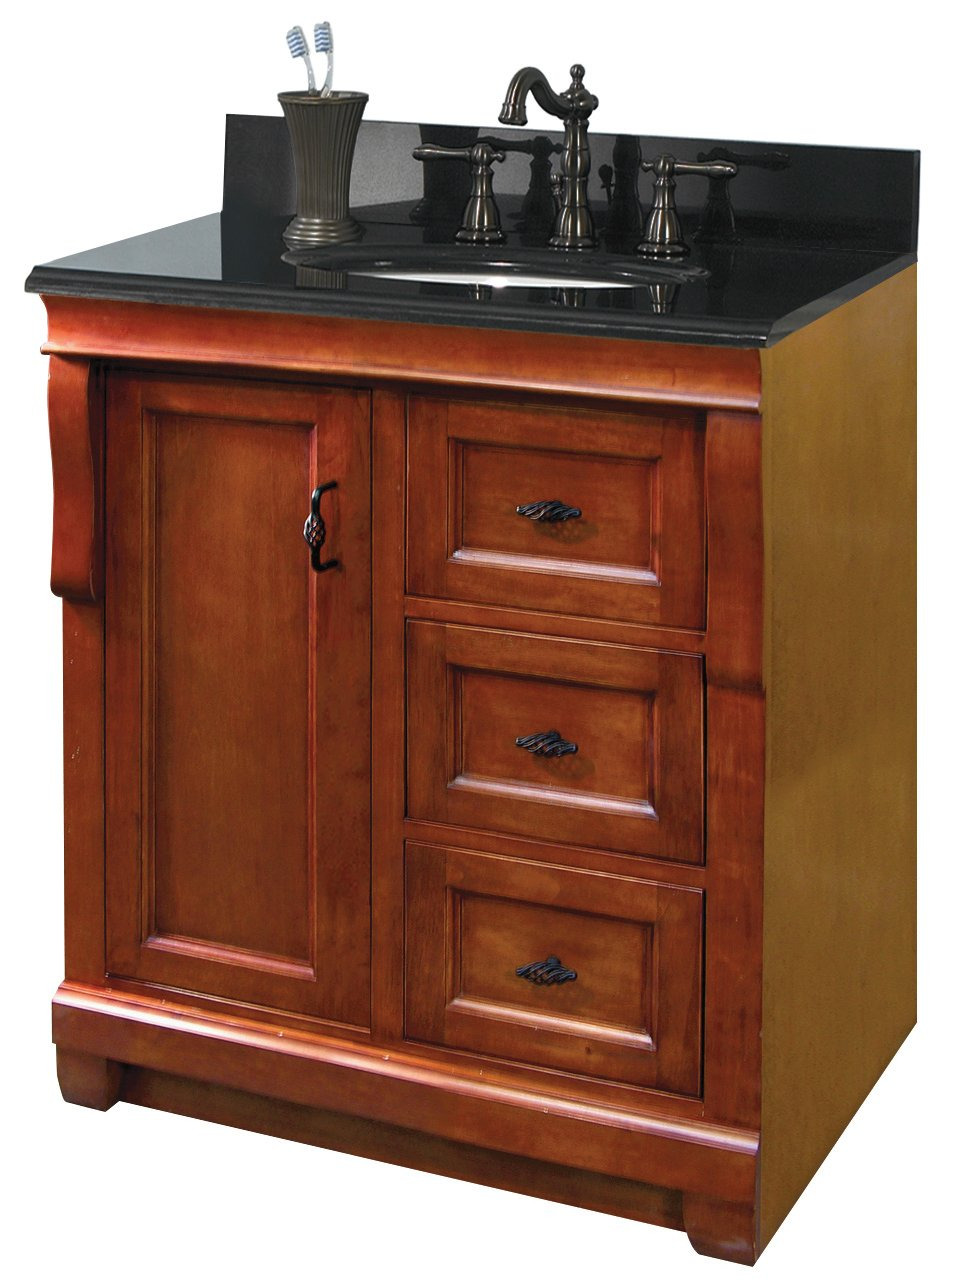 top bathroom vanity depth here countertop limited htm izzy click photo narrow with in space inch